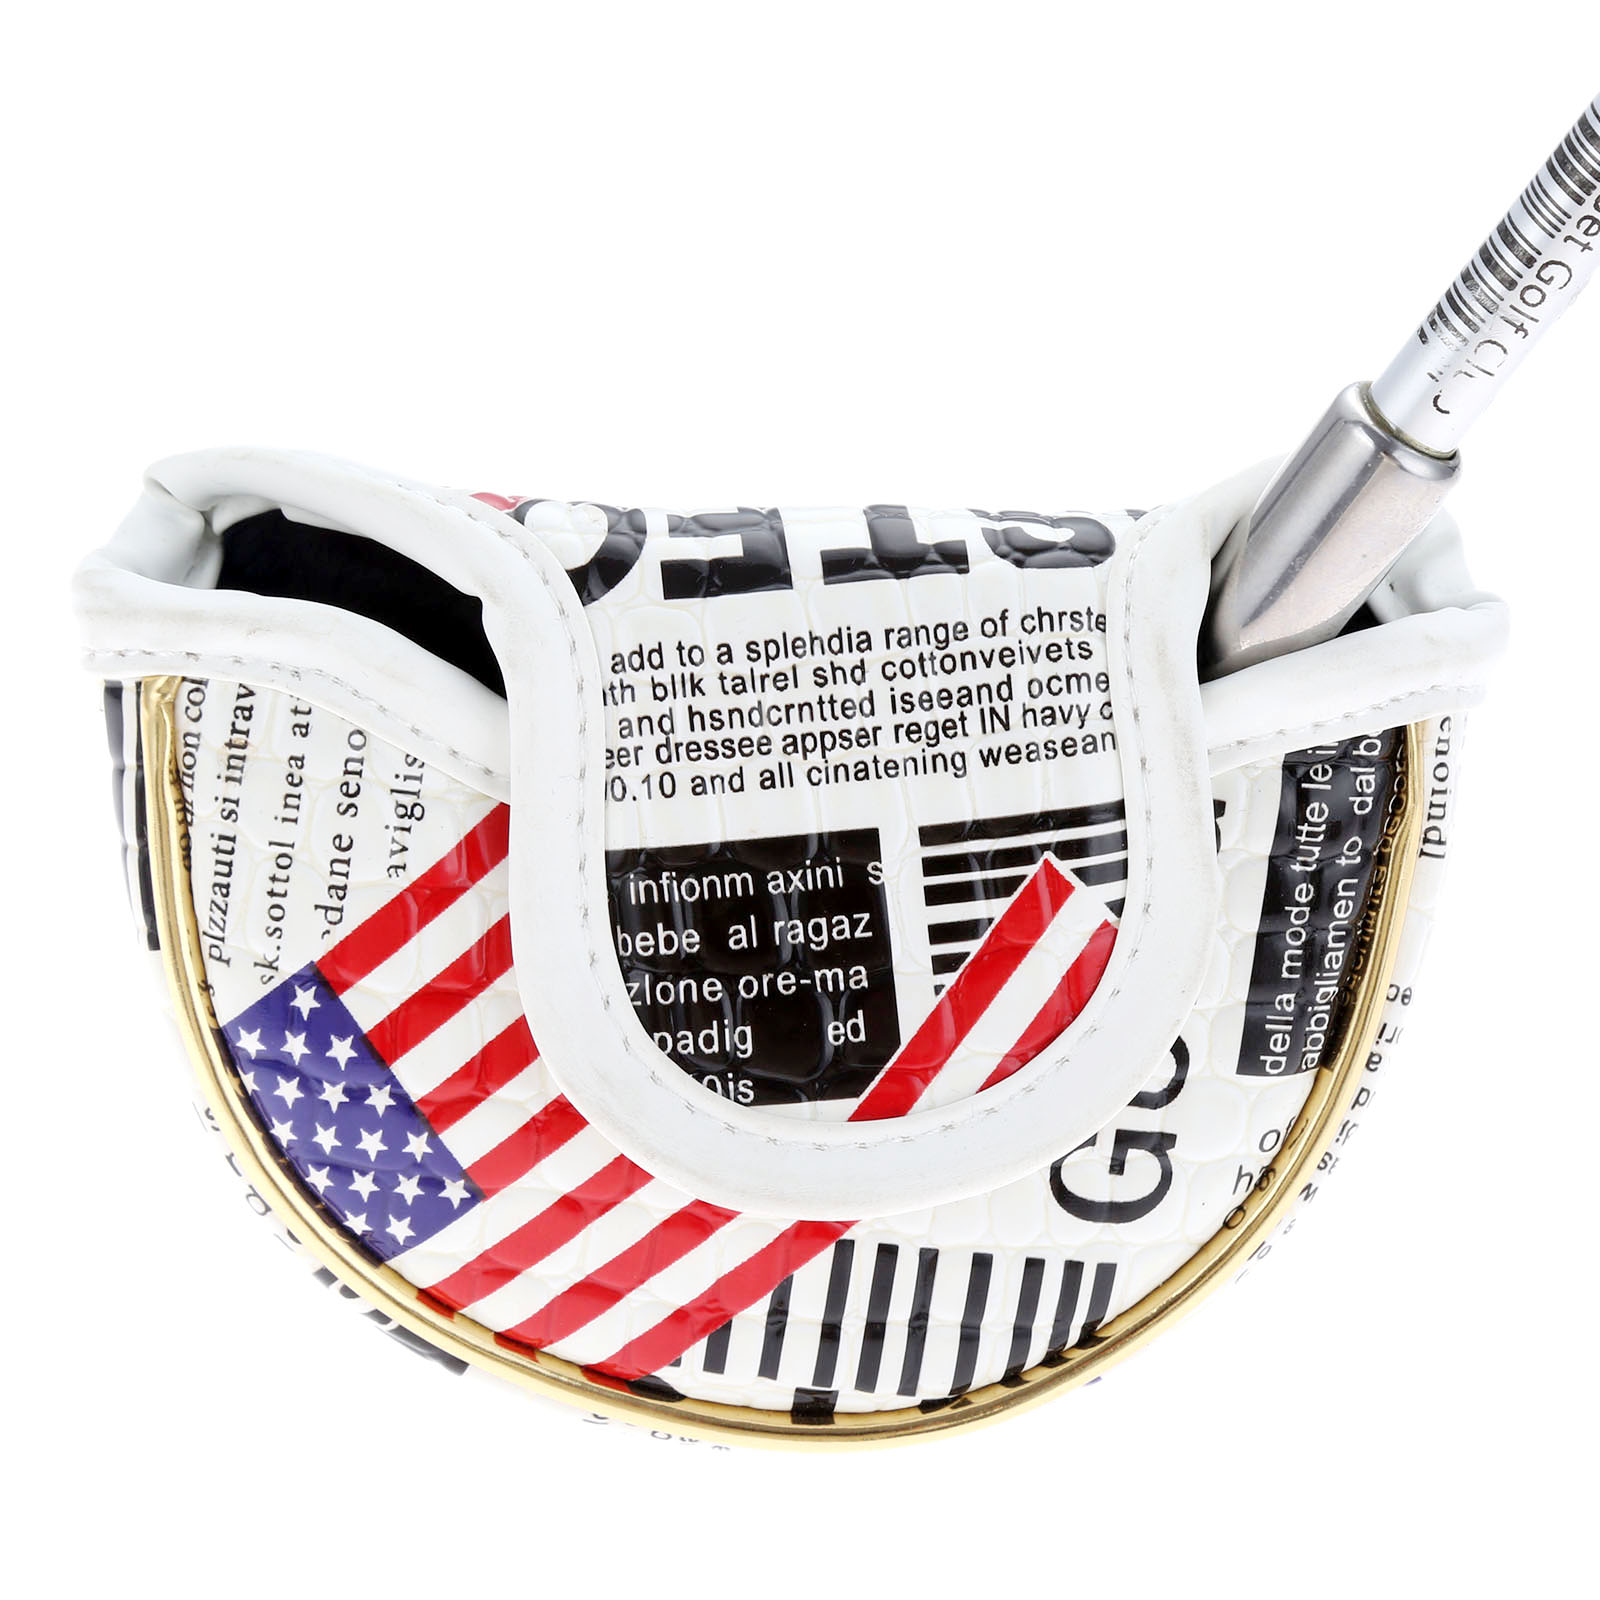 1Pc USA Flag Golf Blade Putter Head Cover PU Waterproof Golf Headcovers For Men Women Golfer Gift Golf Club Heads Accessories